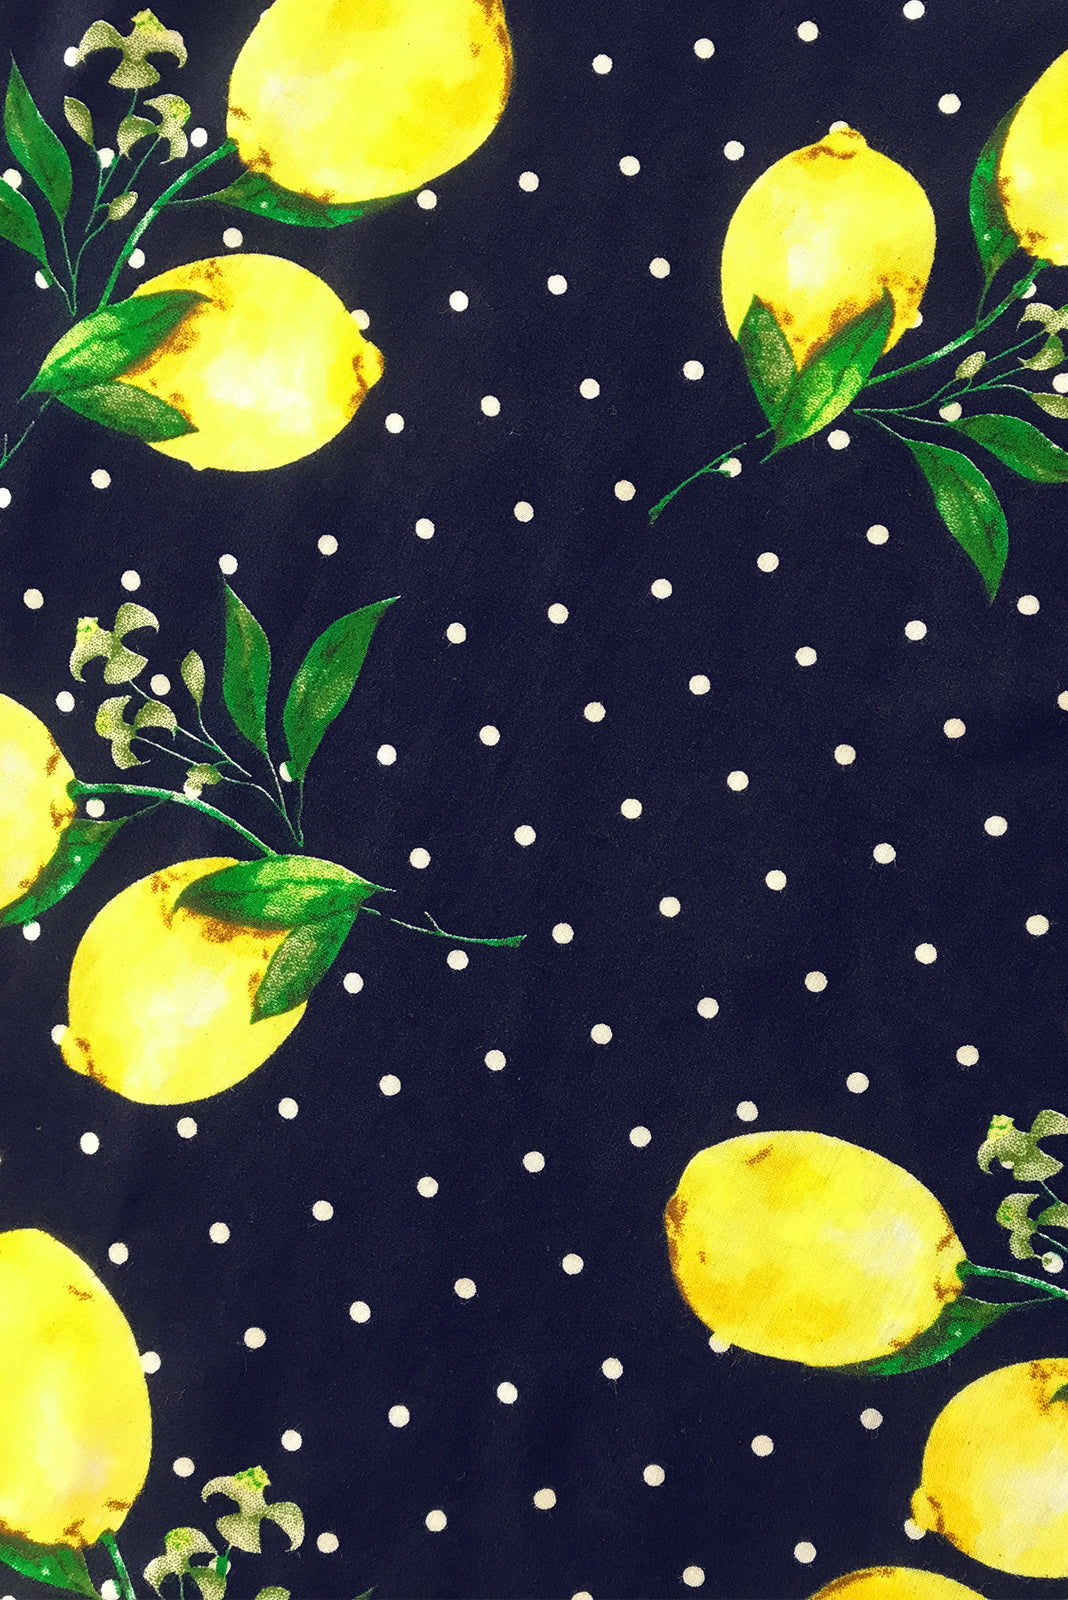 Fabric Swatch of  Petal Limoncello Ink Maxi Wrap Dress featuring  100% rayon in ink base with bold lemon print.